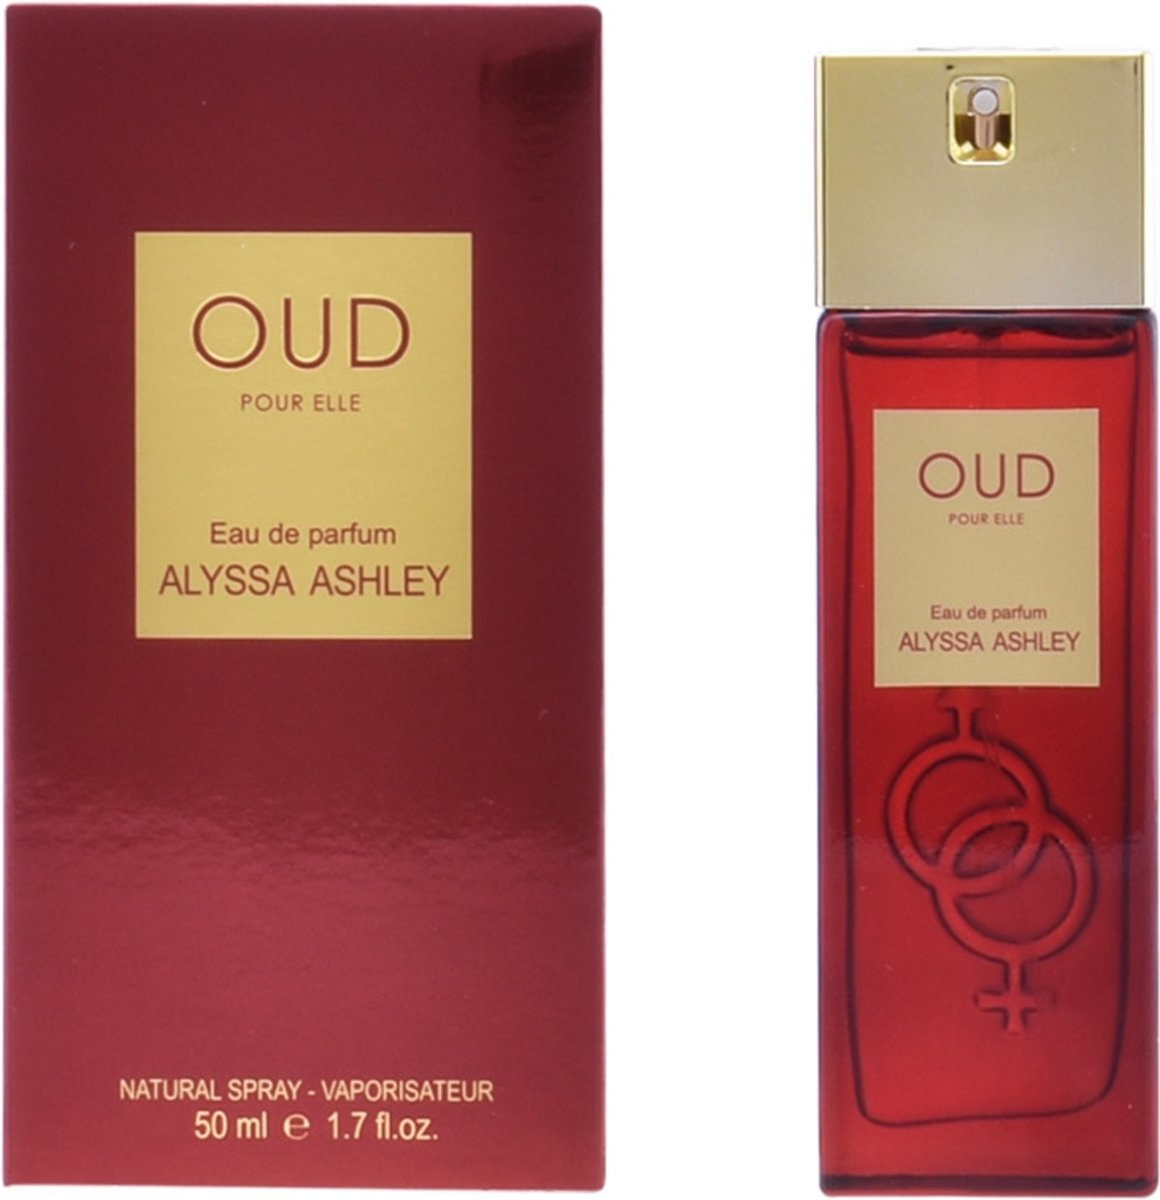 Alyssa Ashley - OUD POUR ELLE edp 50 ml